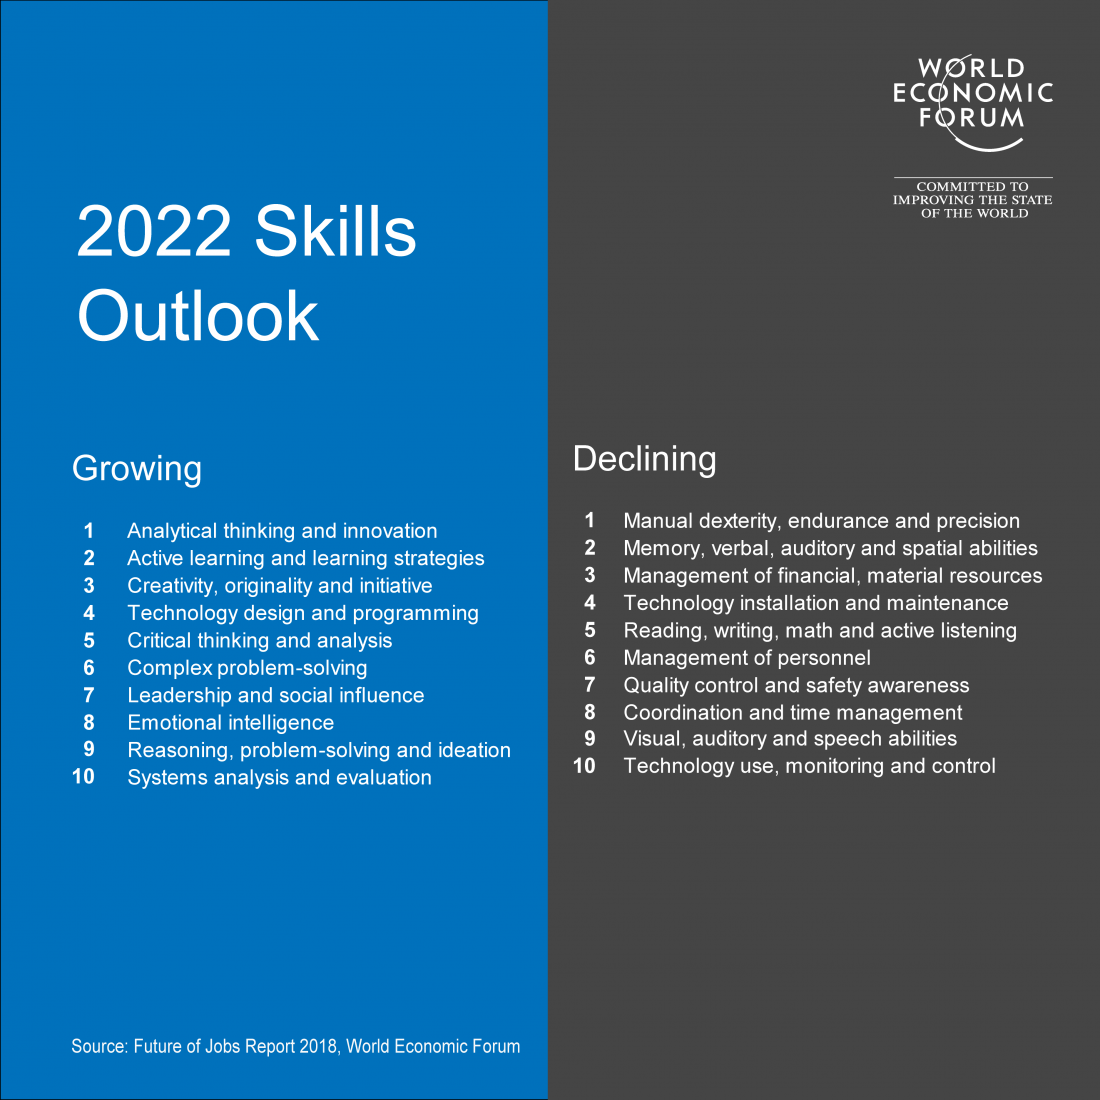 2022 Skills Outlook by the World Economic Forum